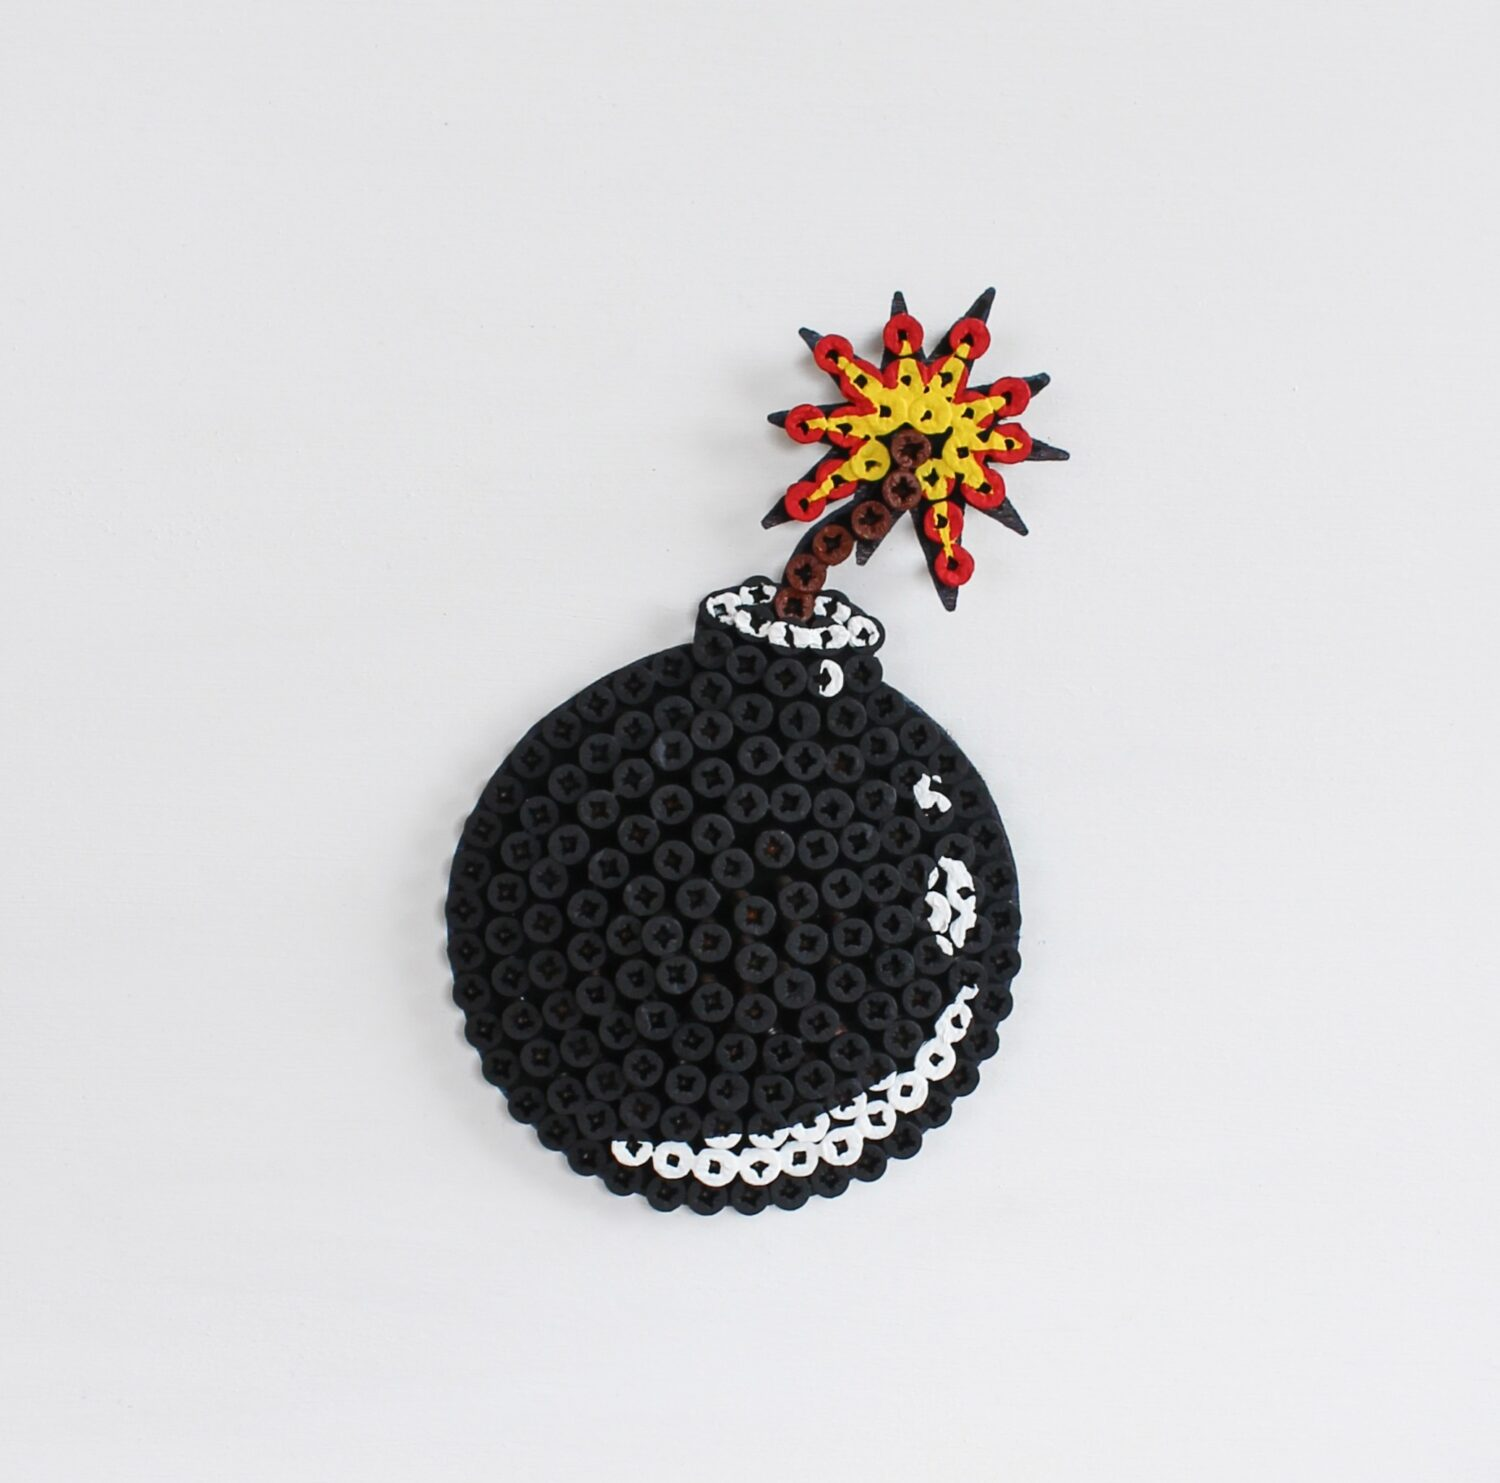 Alessandro Padovan - Screw art - Mini Bomb